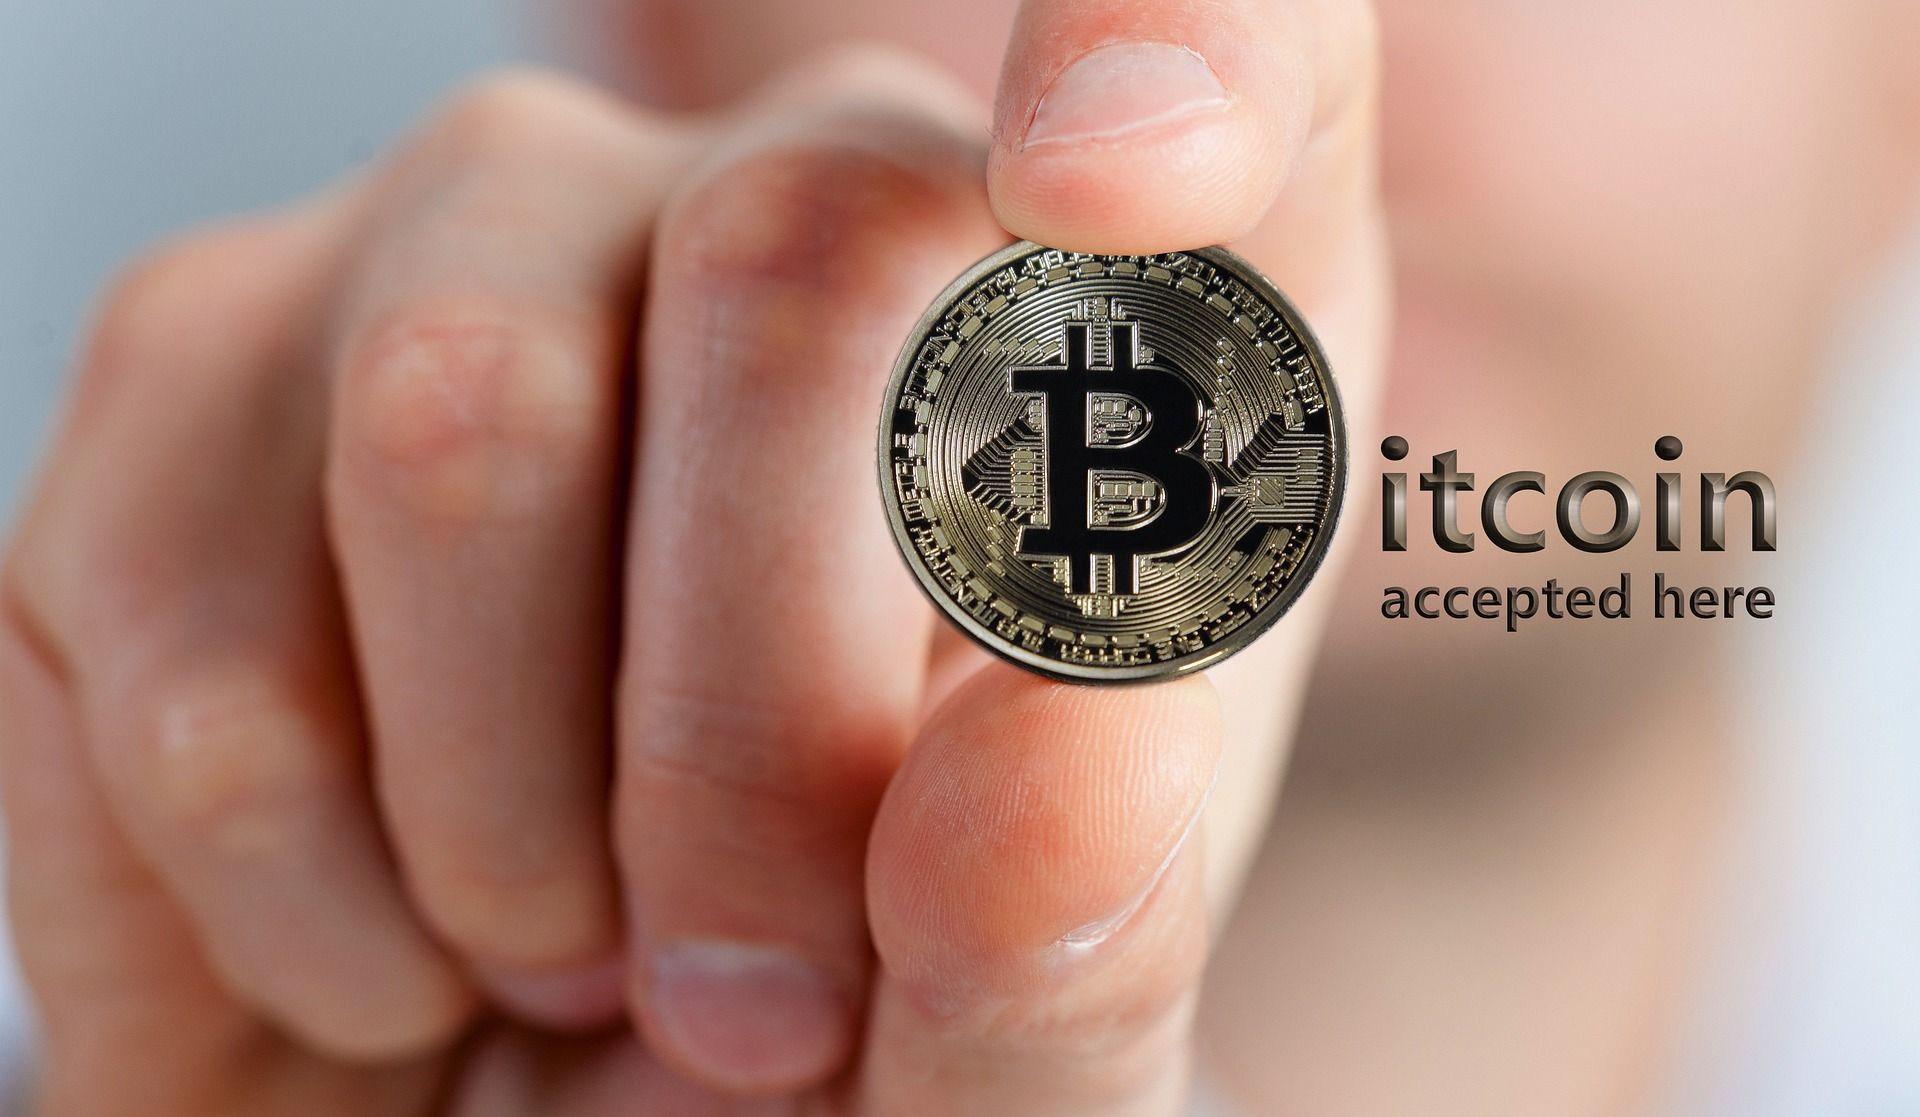 what can you purchase with a bitcoin